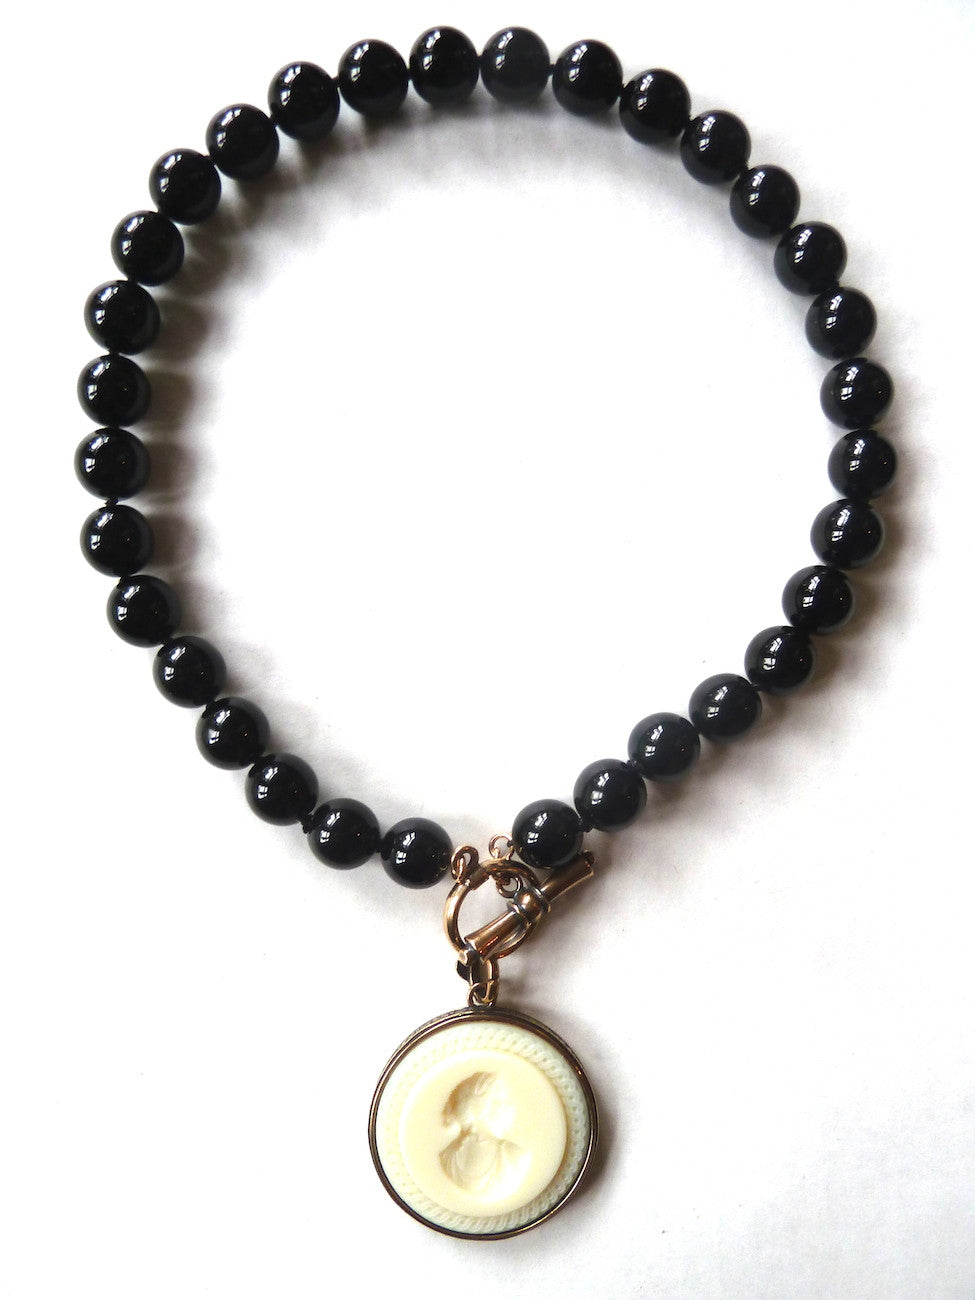 Necklace Intaglio Choker Black Ivory